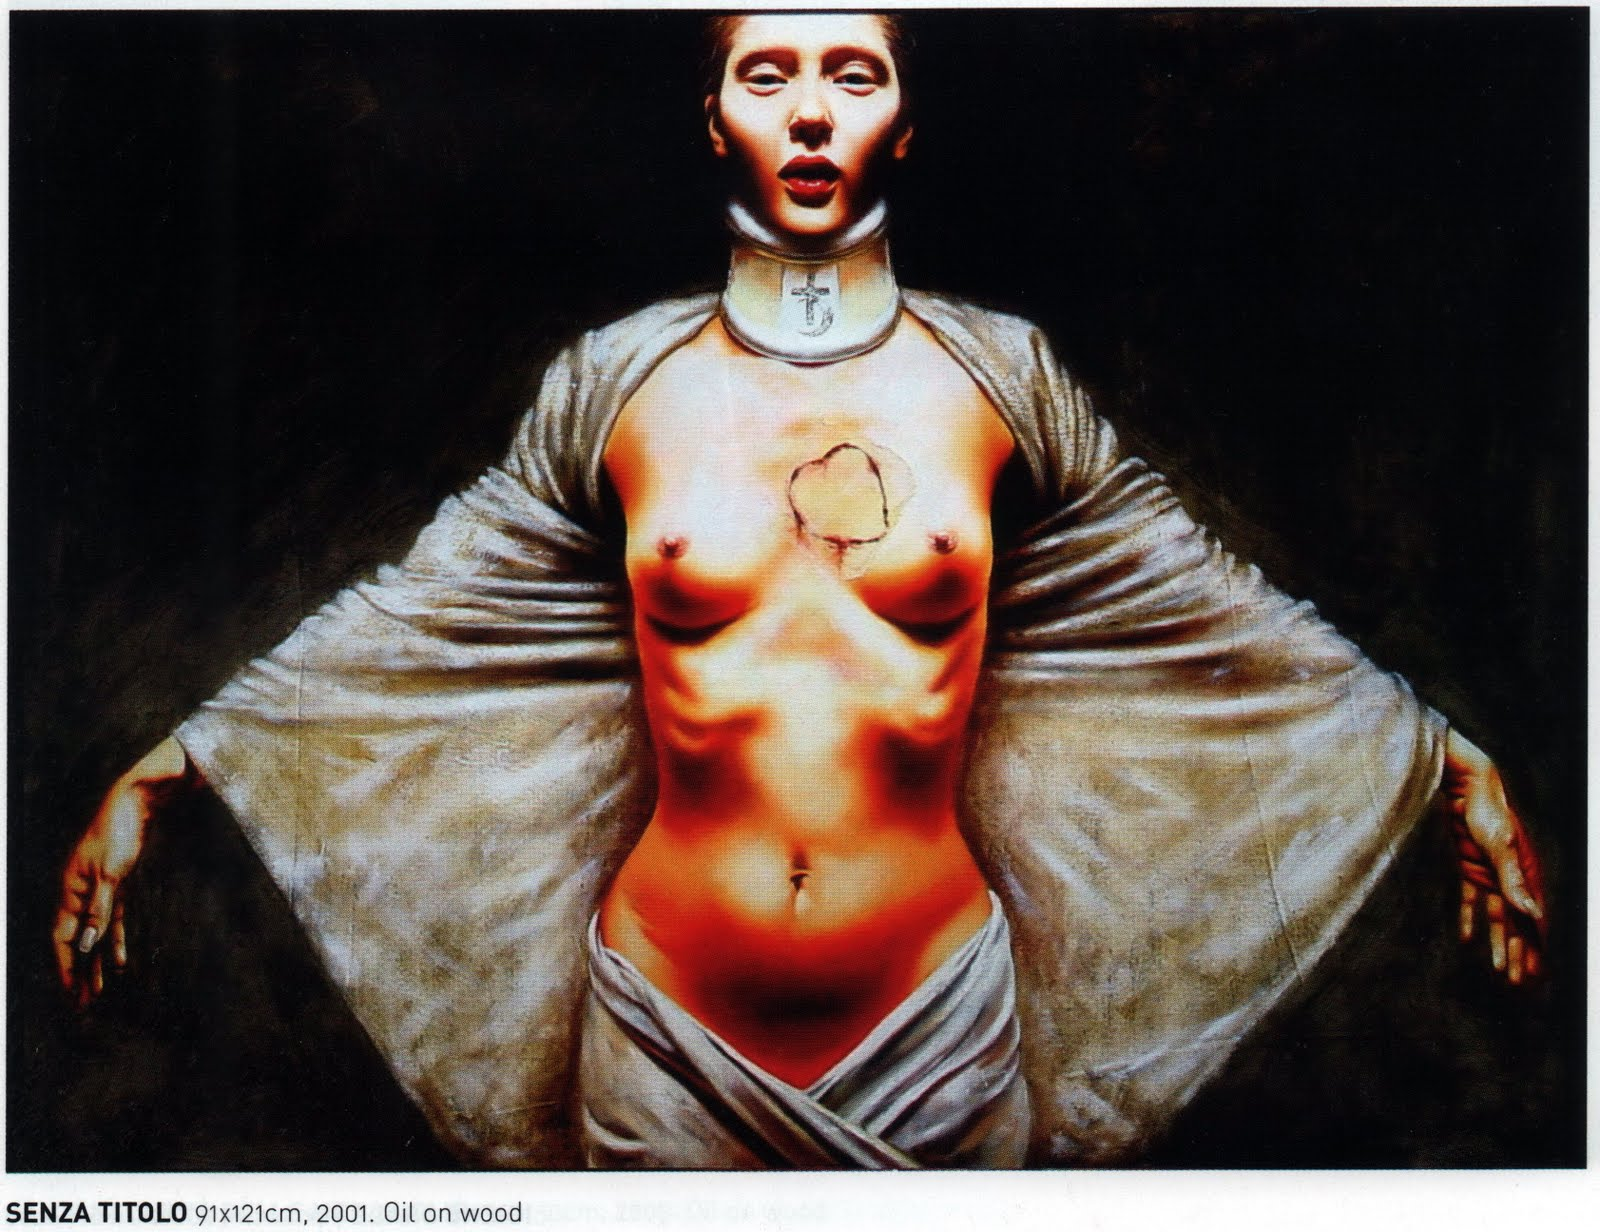 Cult of the Flesh: s_butto_paintings_18_20110820_1562046583.jpg